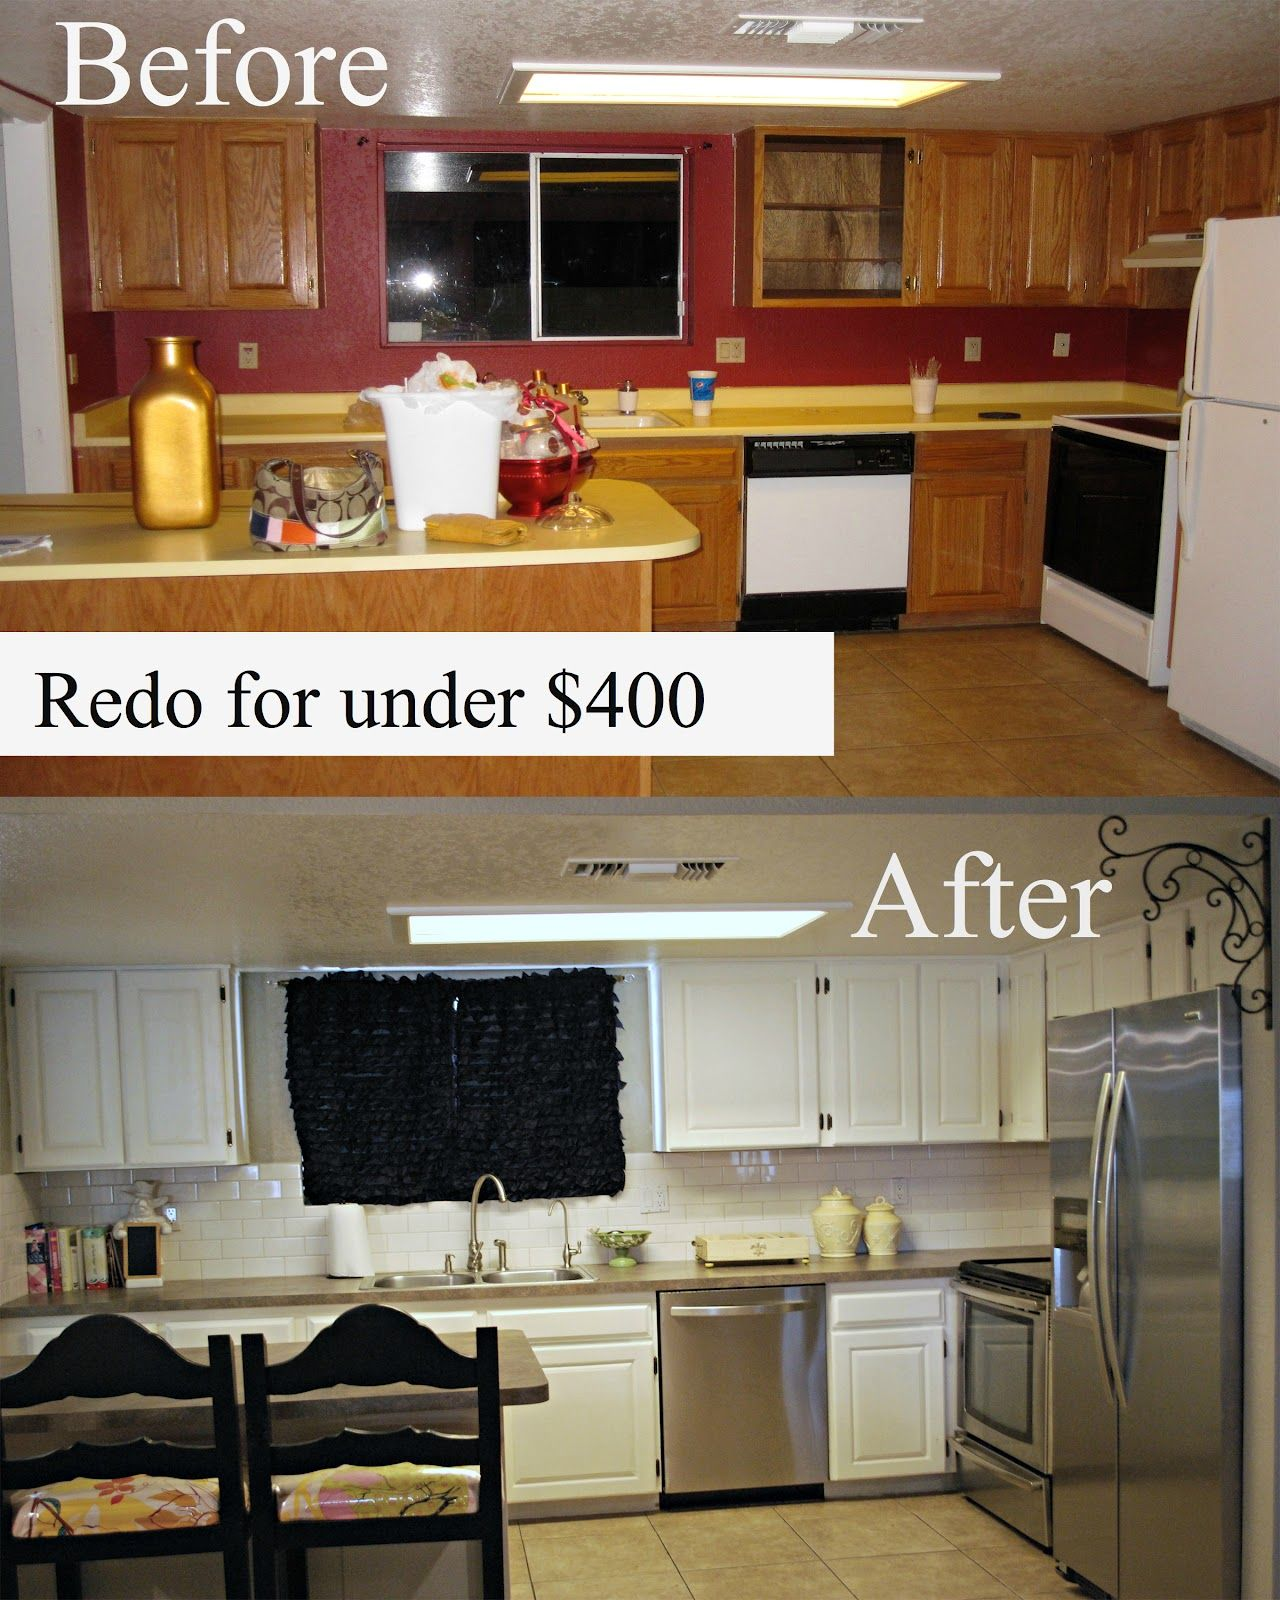 My Kitchen Redo Under $400  Kitchen Redo Clutter And Sinks Inspiration Cheap Kitchen Remodel Design Decoration